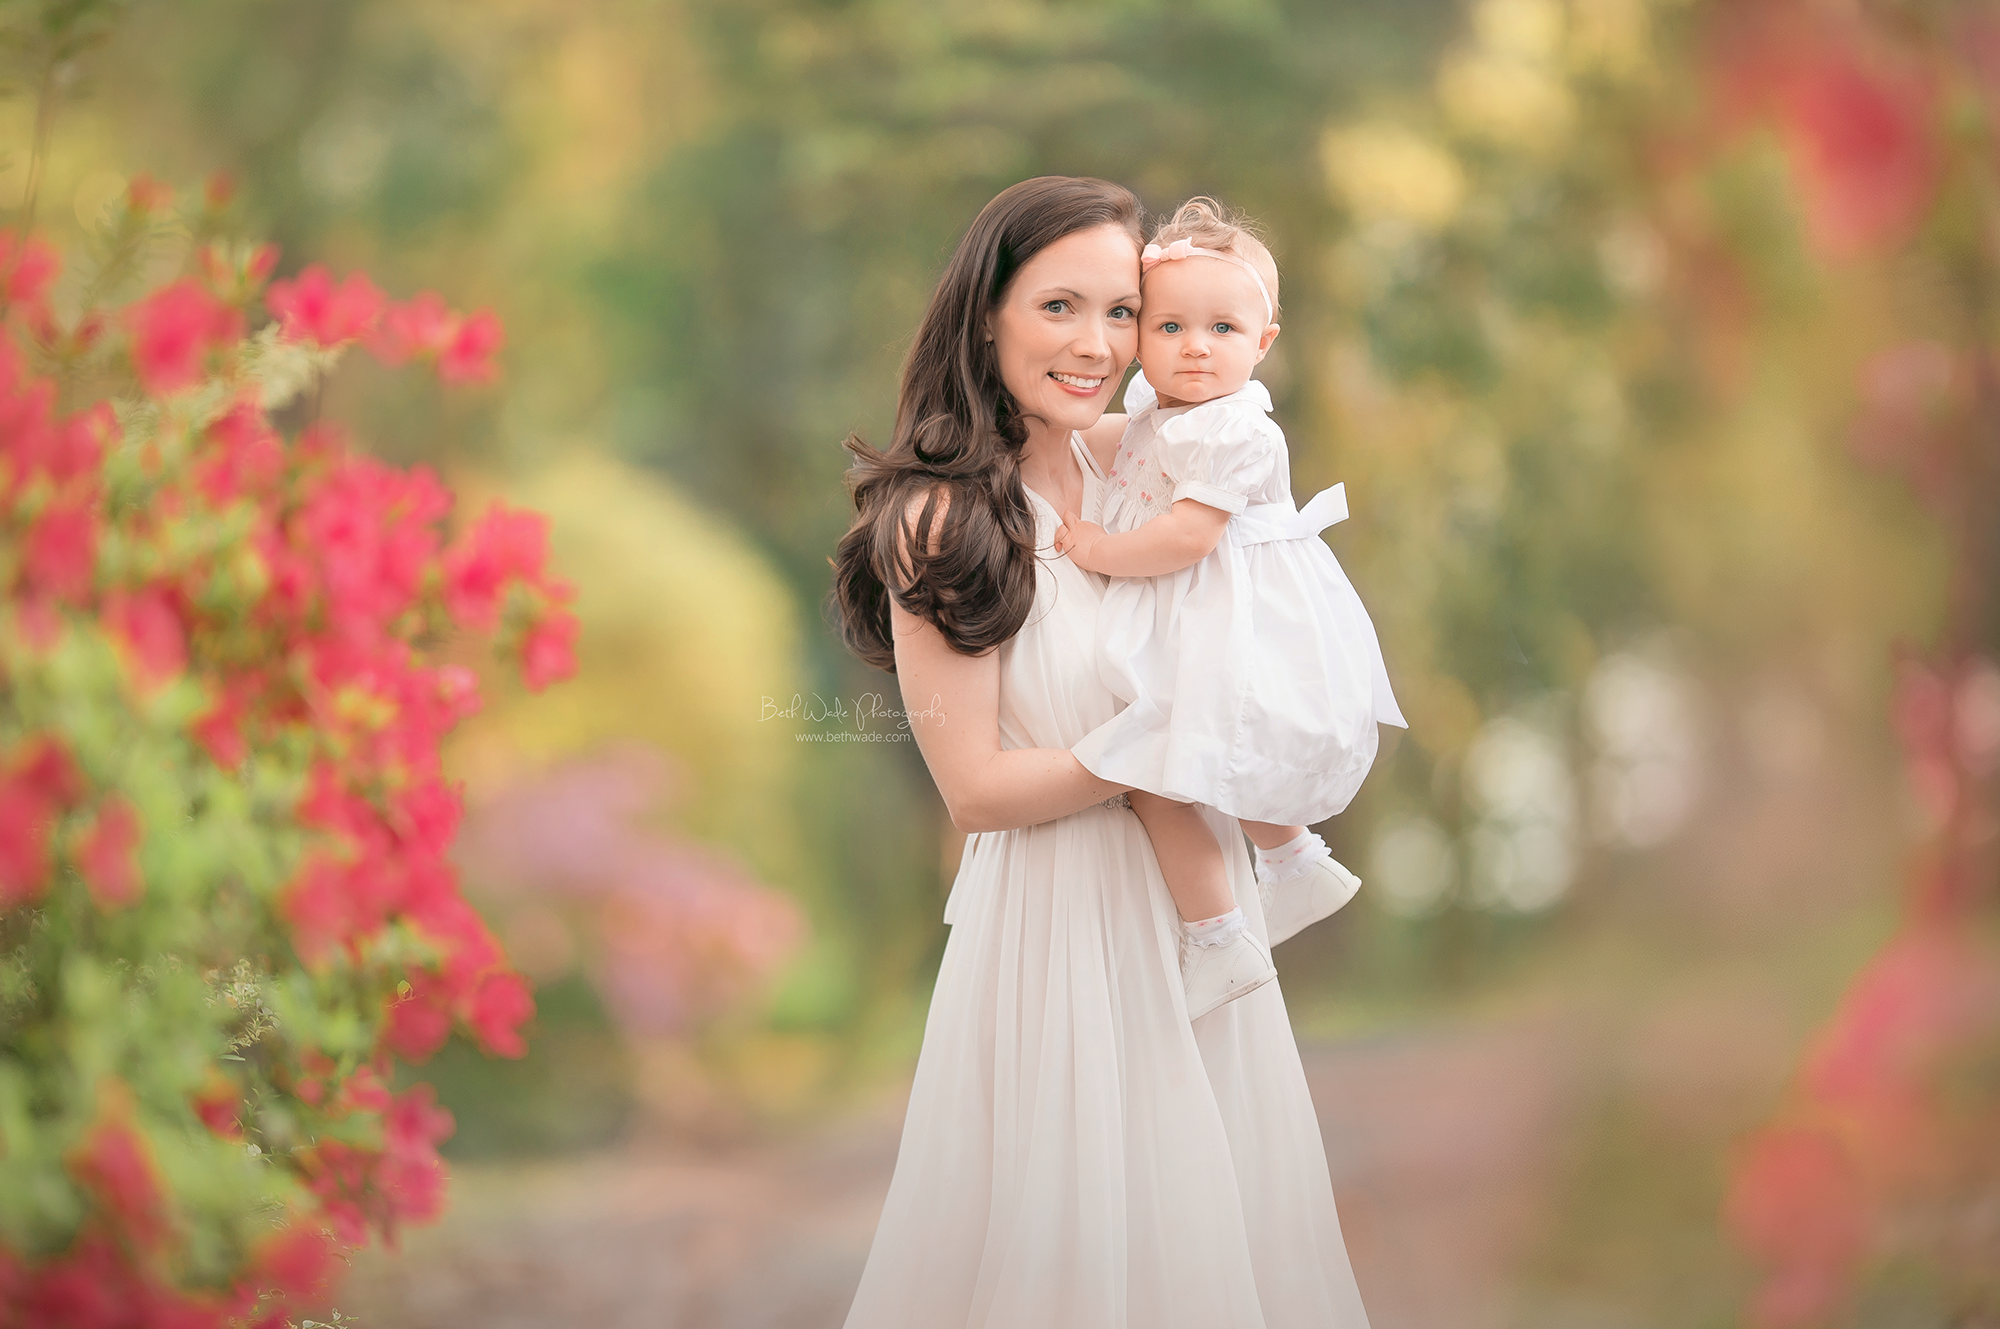 spring with Alice - charlotte baby photographer beth wade